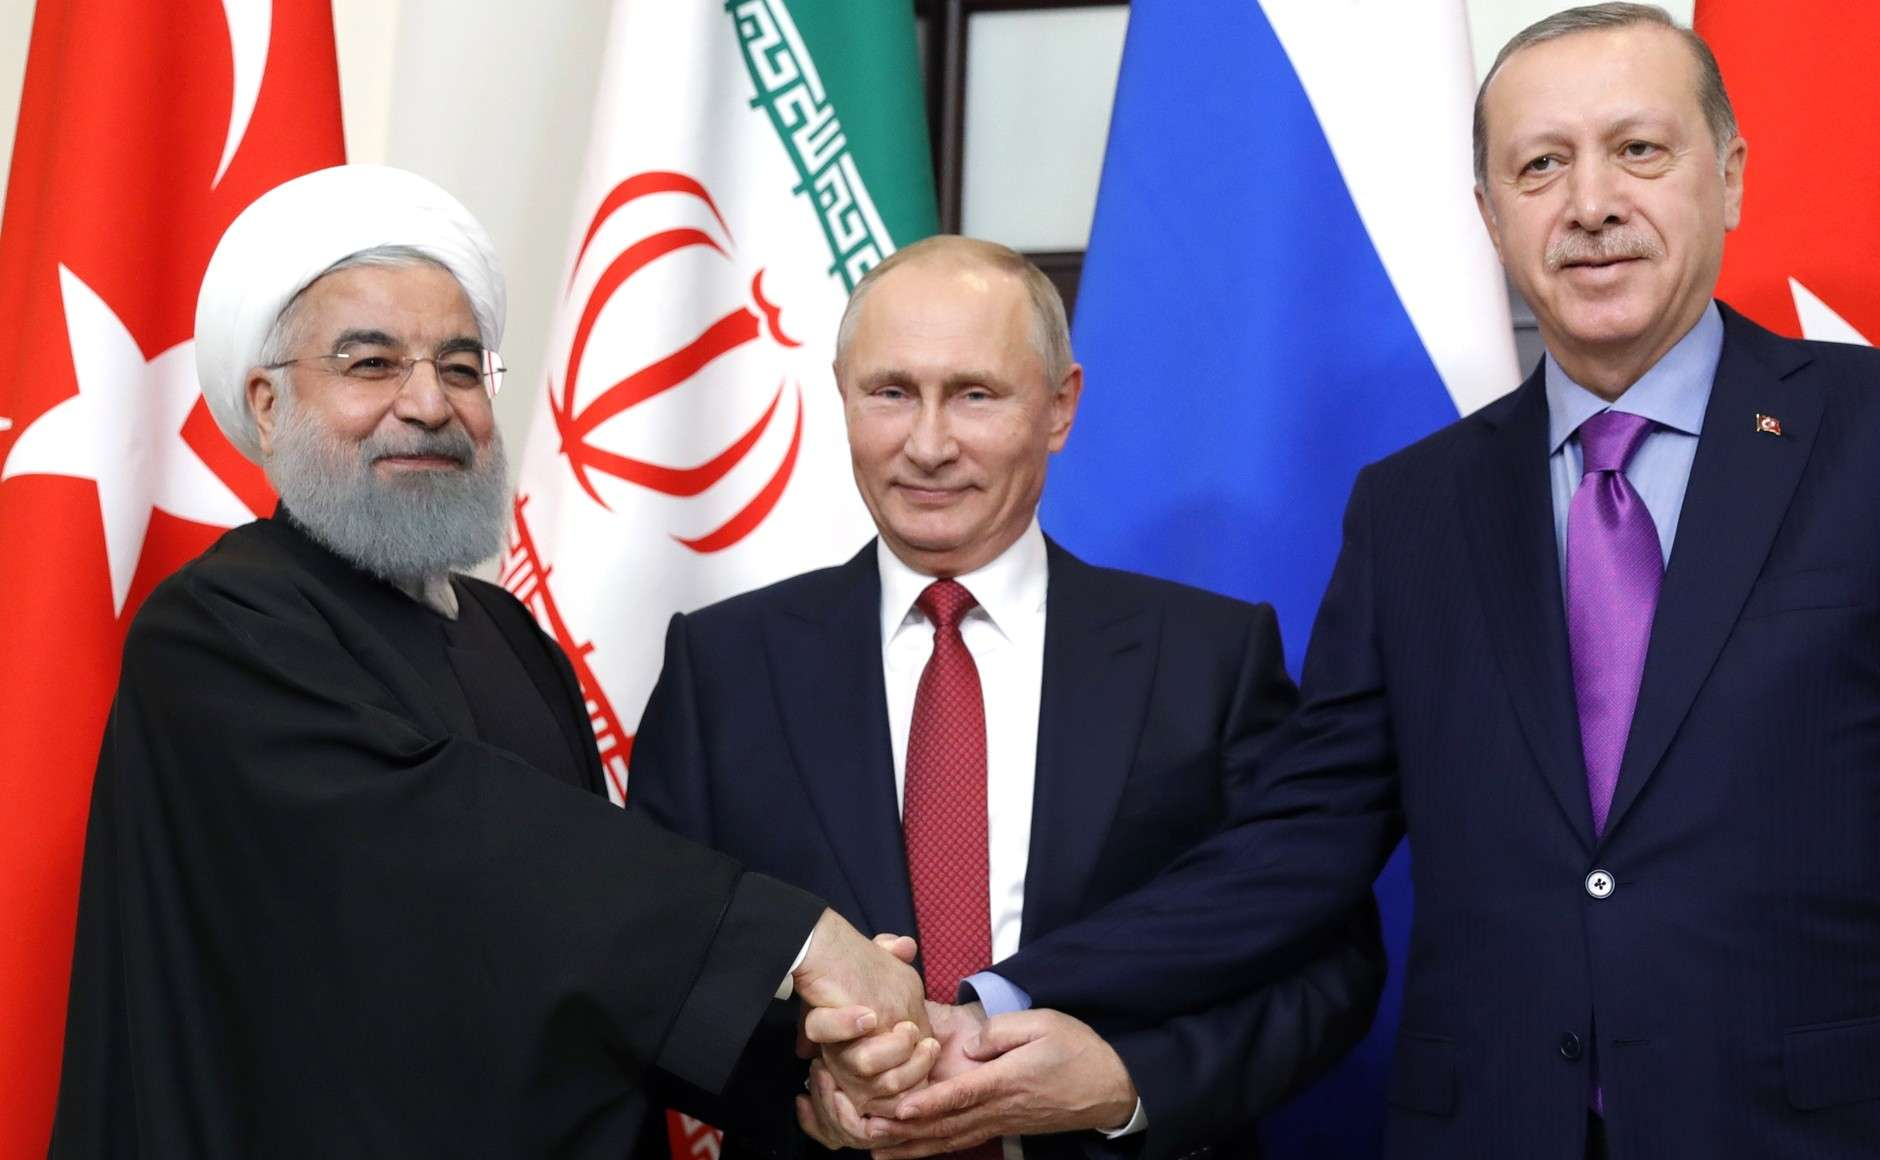 Putin Rouhani Erdogan meeting